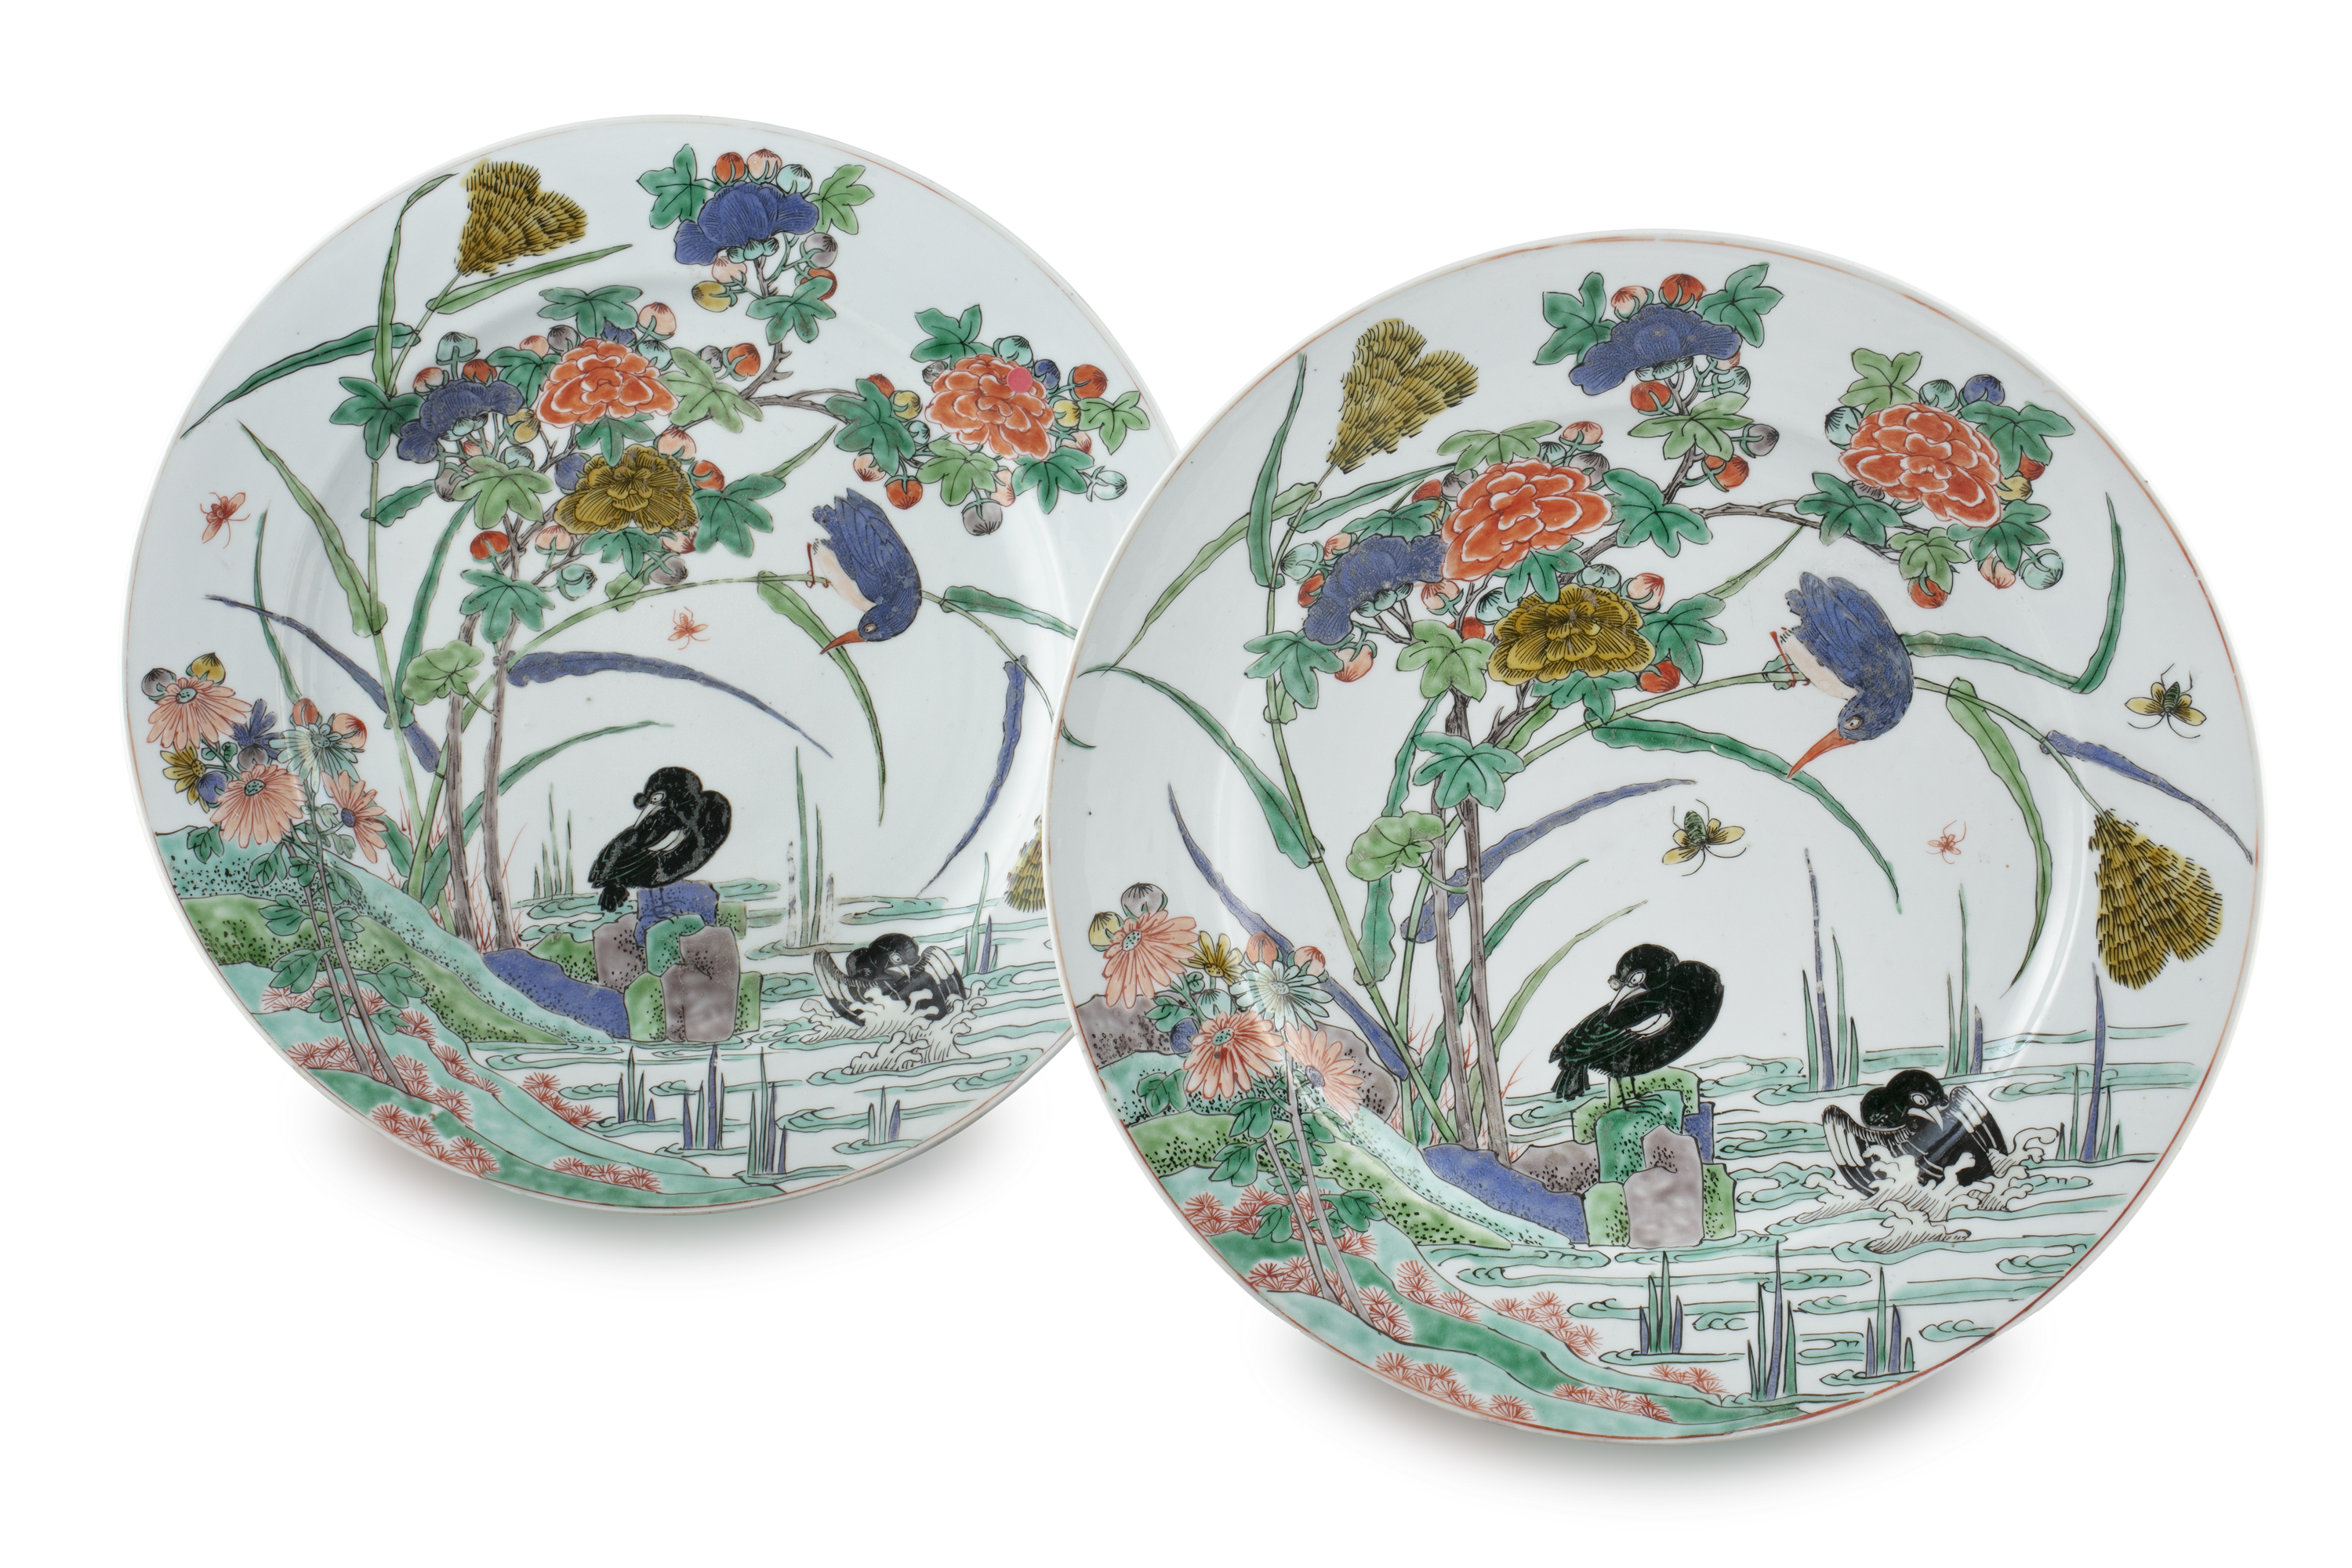 AN IMPORTANT PAIR OF FAMILLE VERTE 'FLYCATCHER AND MAGPIES' PORCELAIN SHALLOW DISHES China, Qing